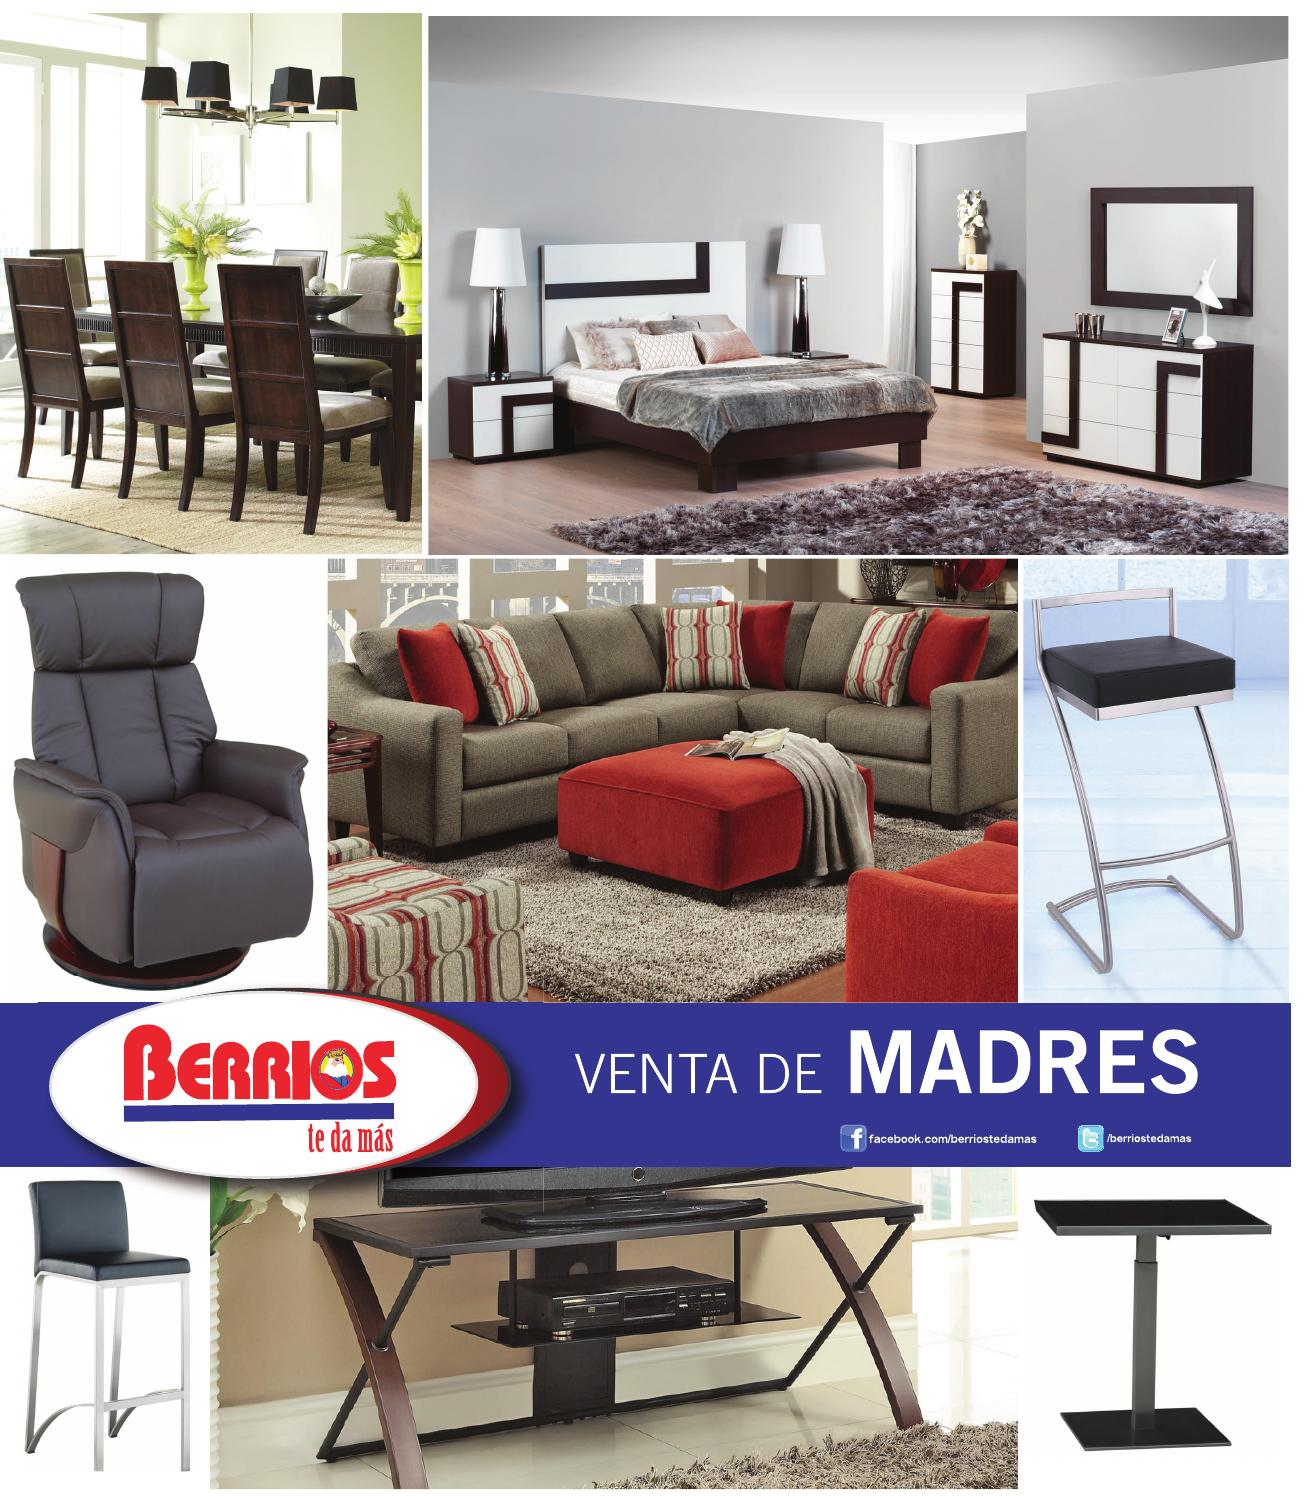 Wonderful Berrios Shopper | Madres 2015 By Berrios   Issuu